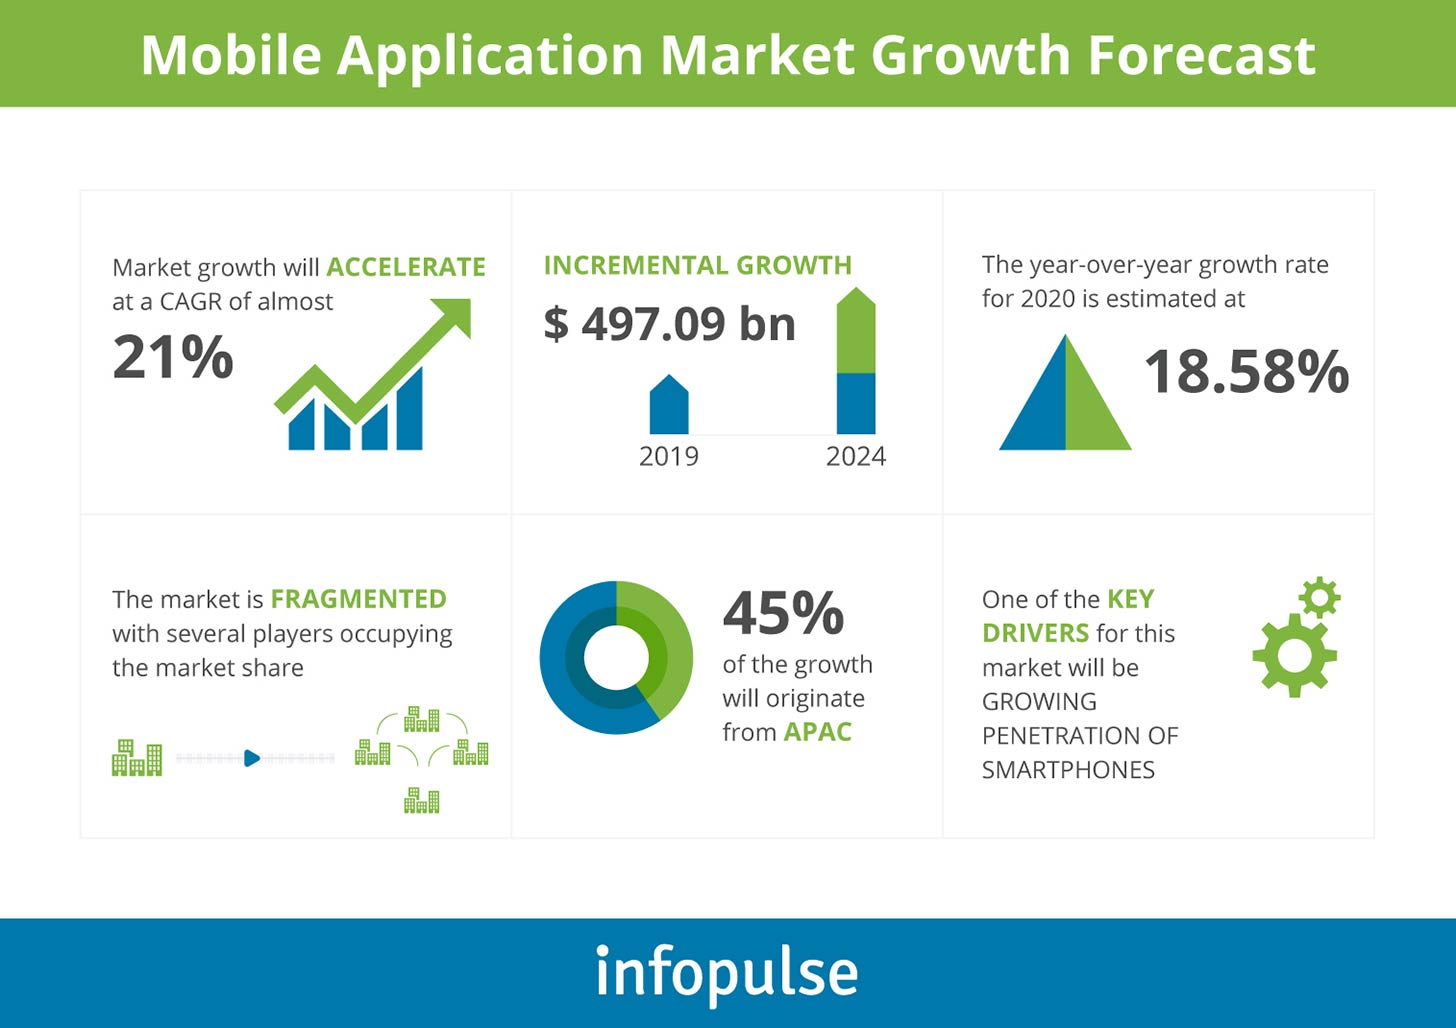 Mobile Application Market Growth Forecast - Infopulse - 1